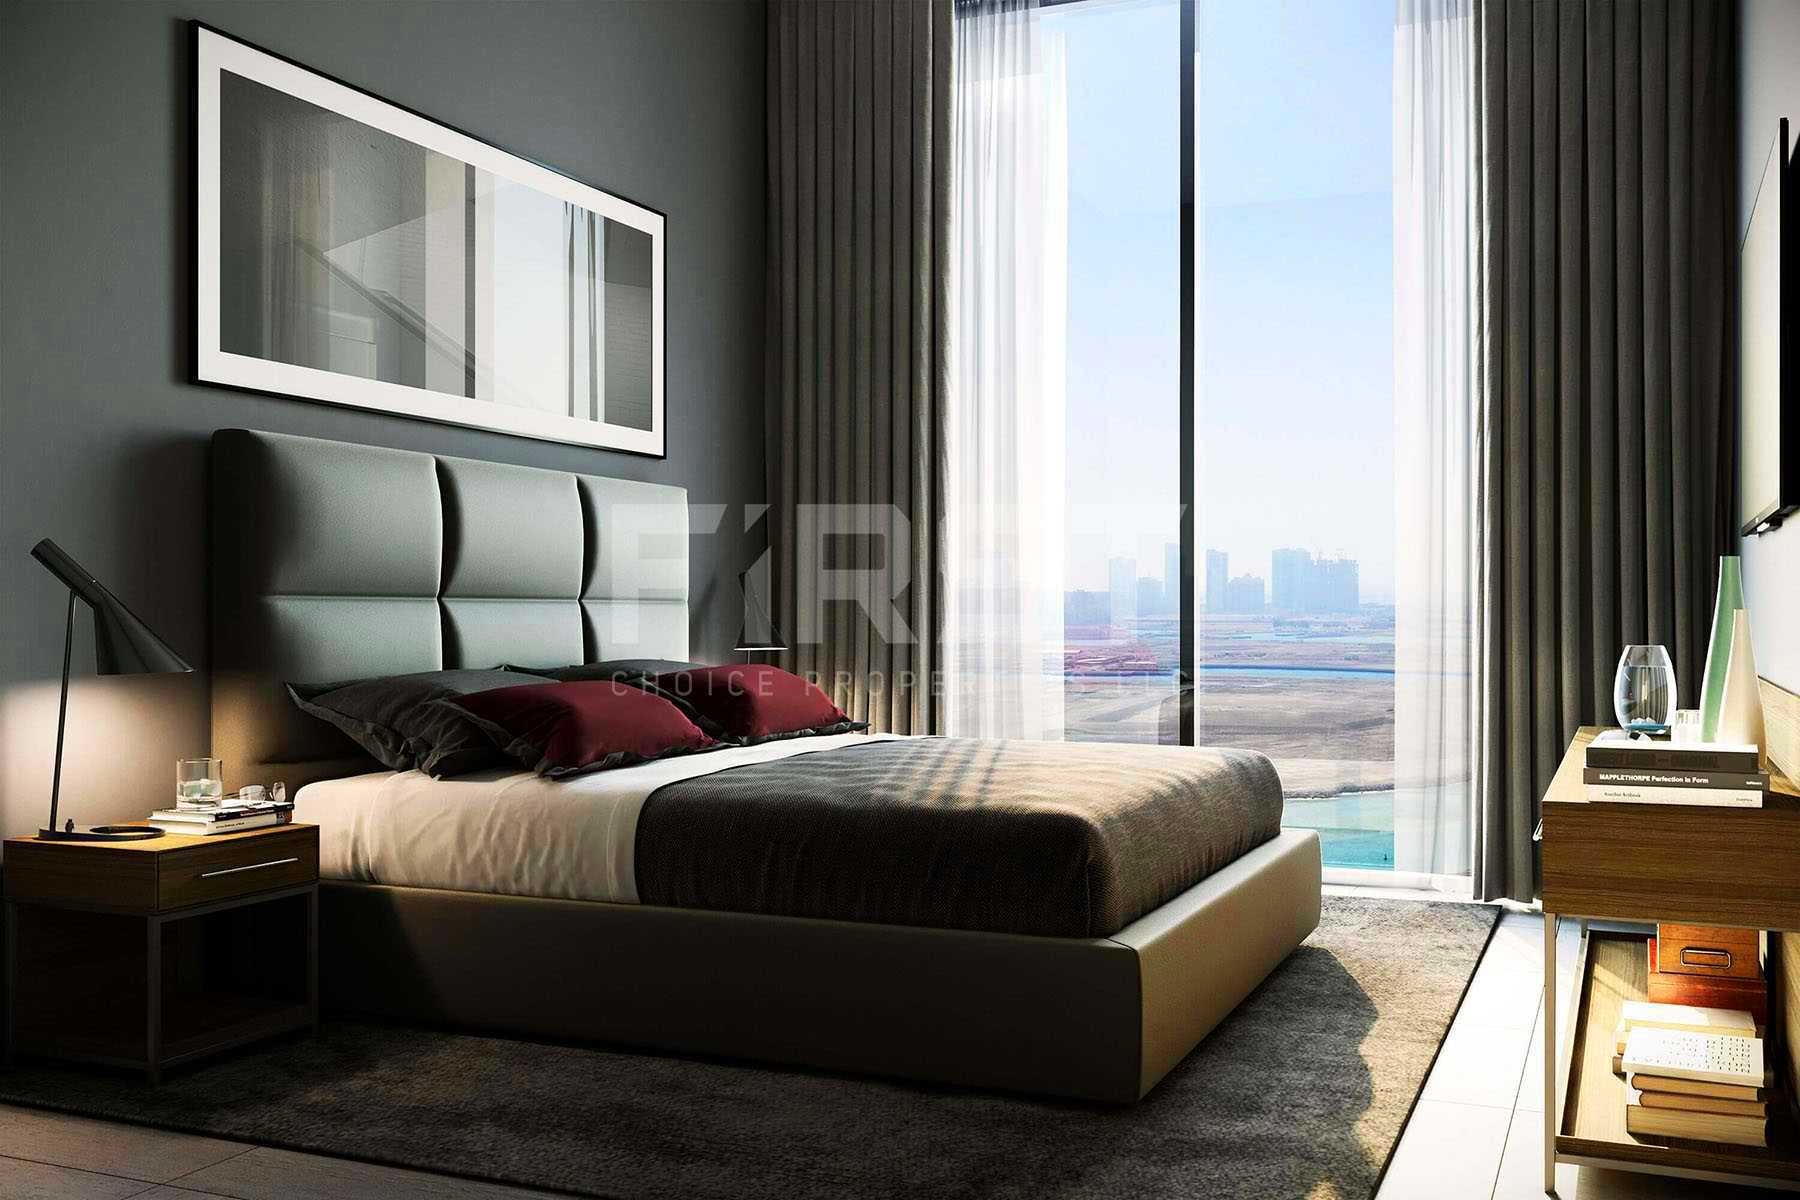 Studio,1 Bedroom, 2 Bedroom, 3 Bedroom,Apartment in The Bridges,Shams Abu Dhabi,Al Reem Island- Abu Dhabi-UAE (2).jpg